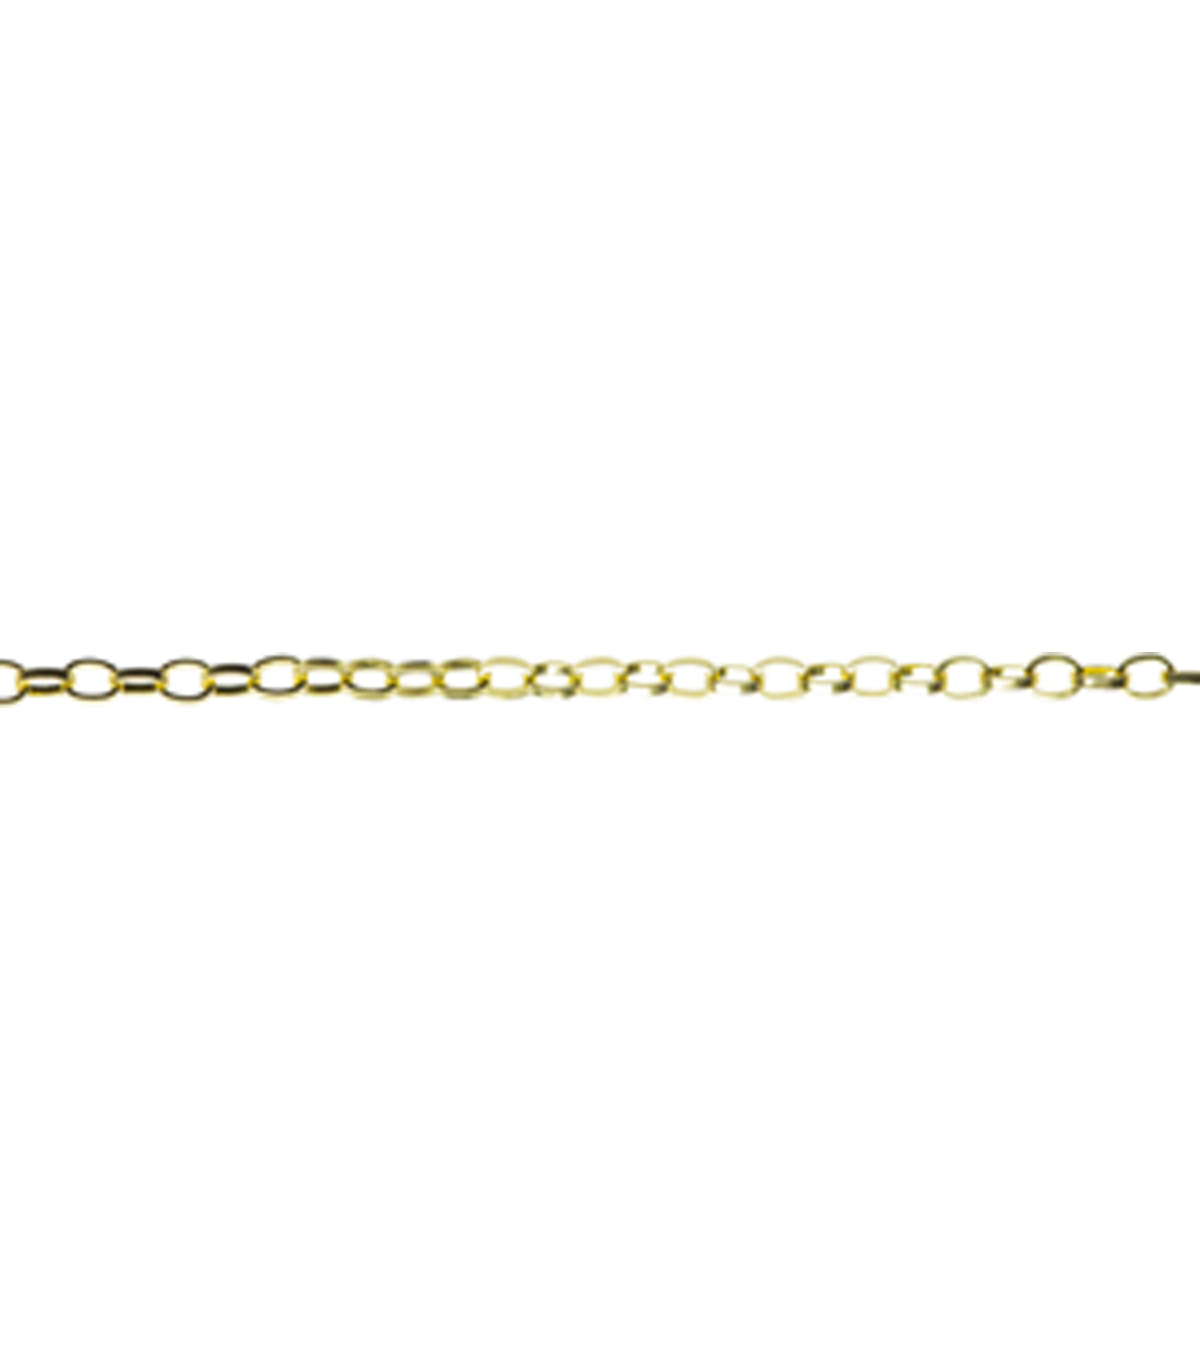 Jewelry Basics 30in/76.2cm Gold Open Link Chain by Cousin